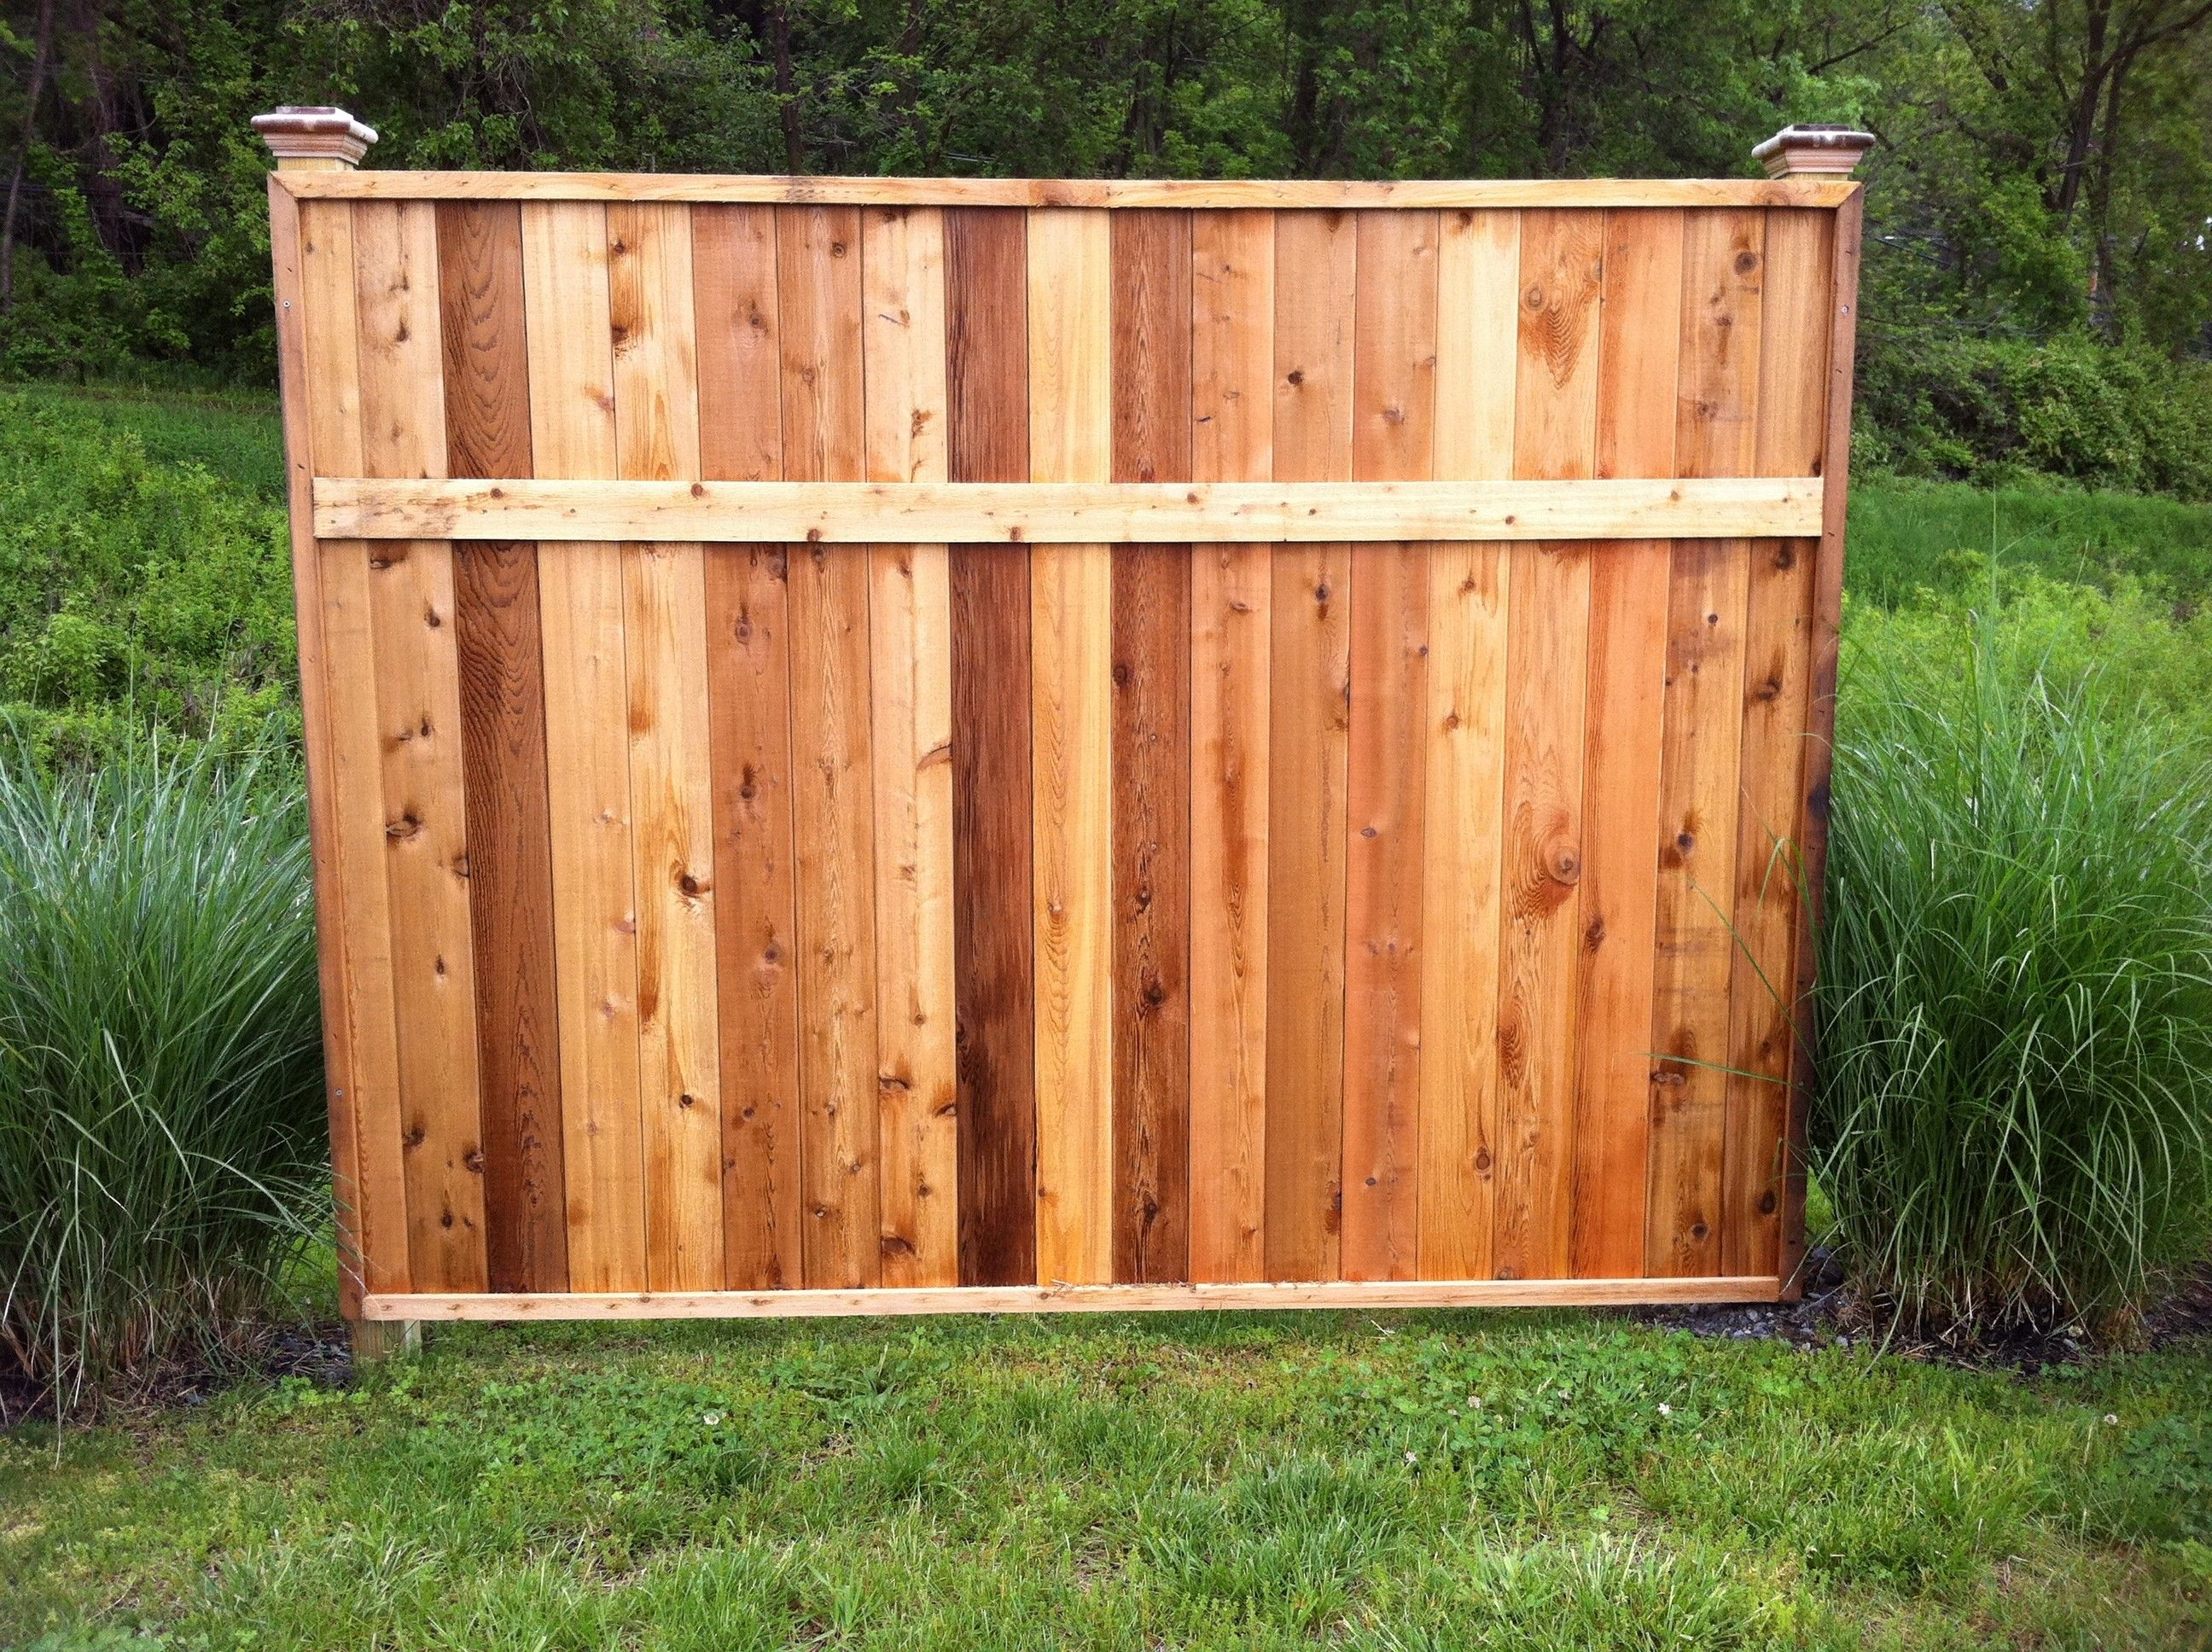 20 best Neighborly Fence ideas images on Pinterest